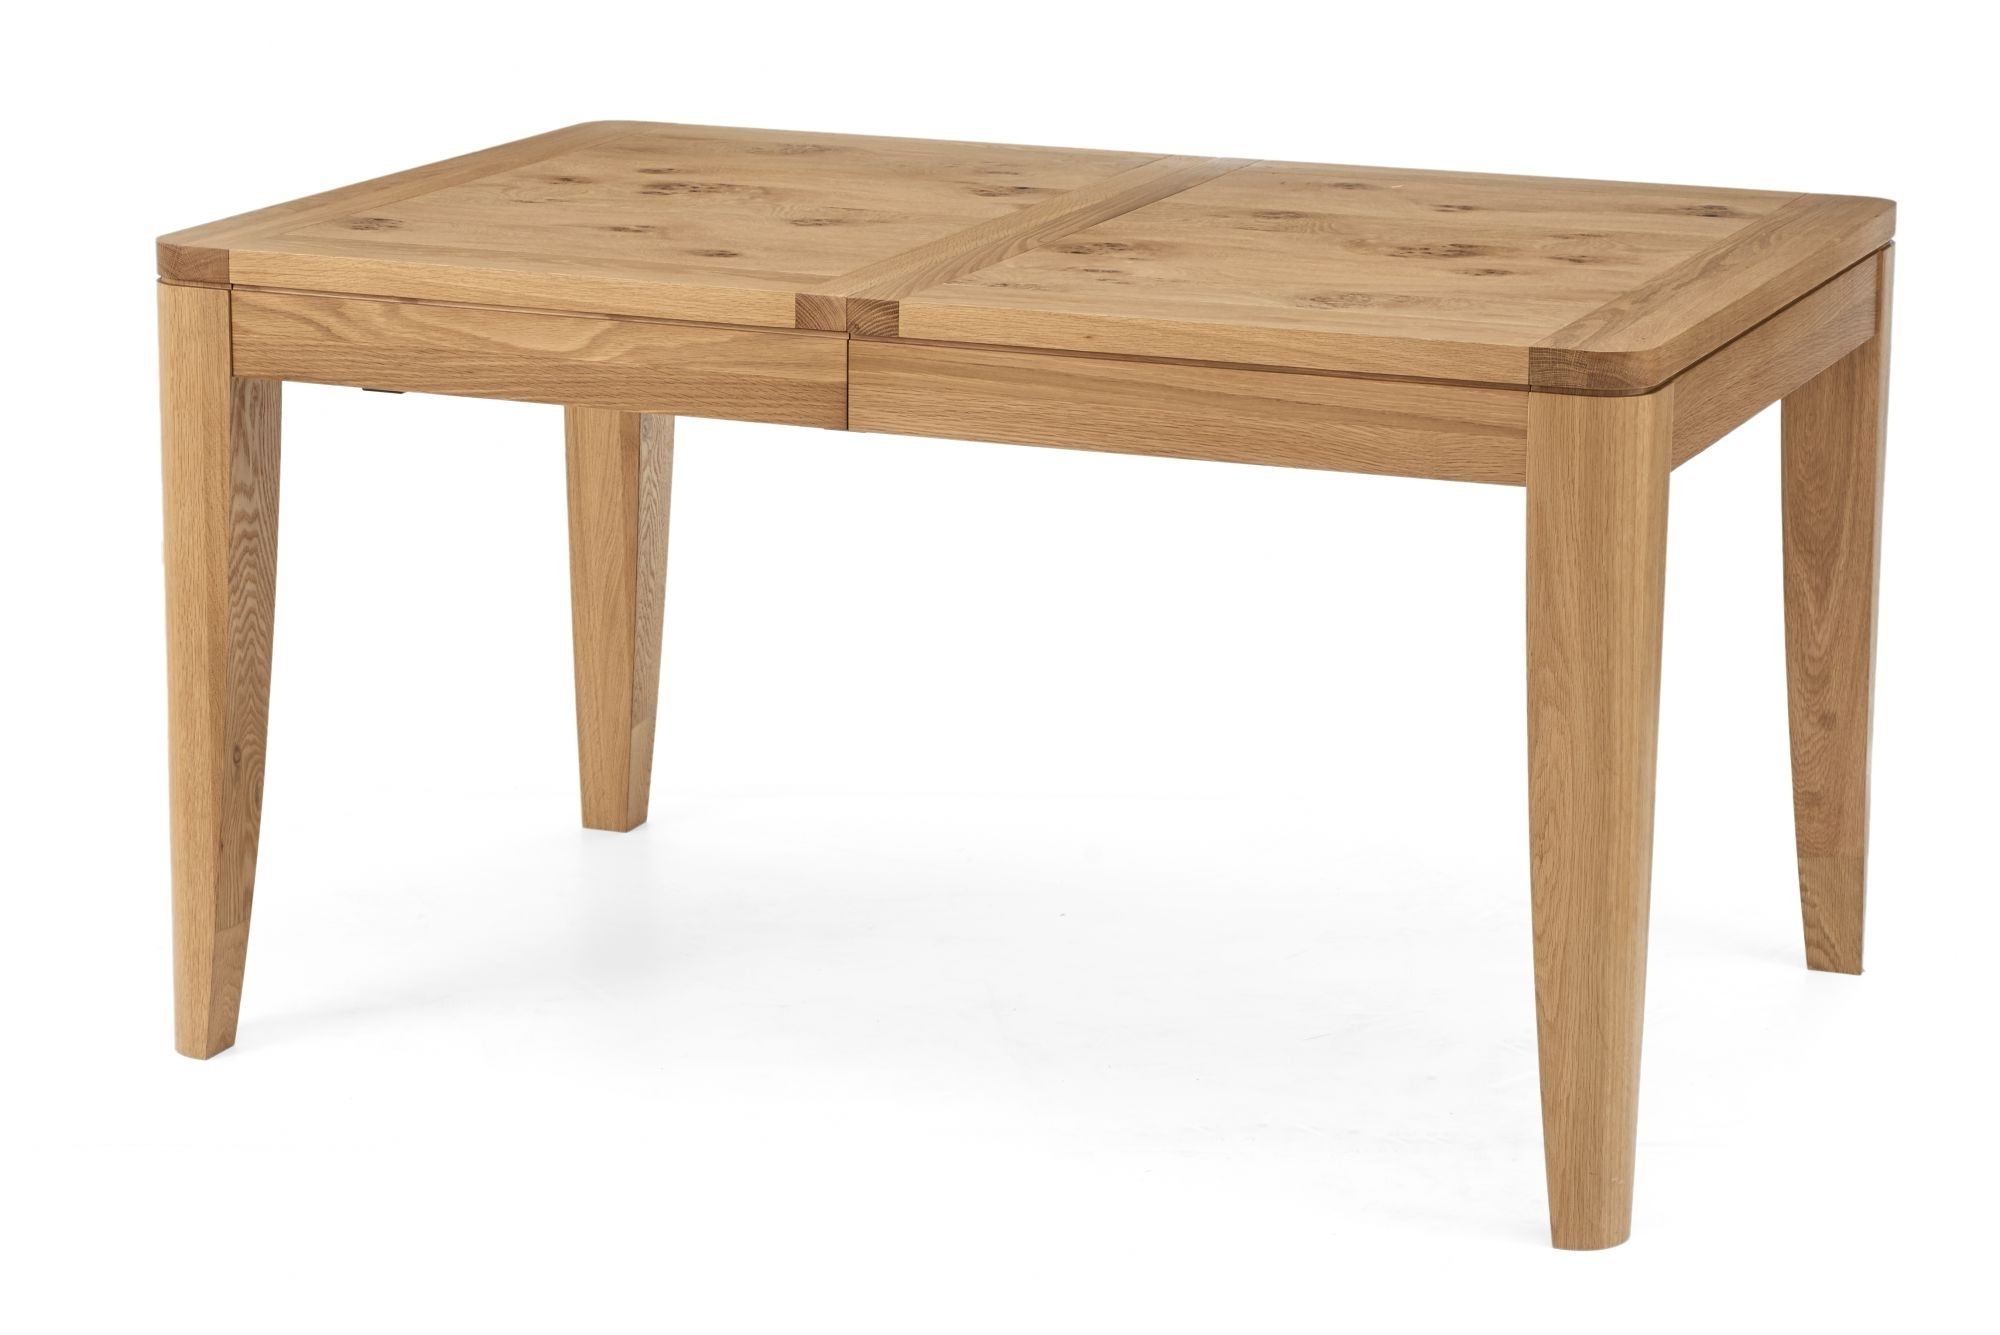 Pippy Oak Medium 4 6 Seater Extending Dining Table (View 18 of 25)